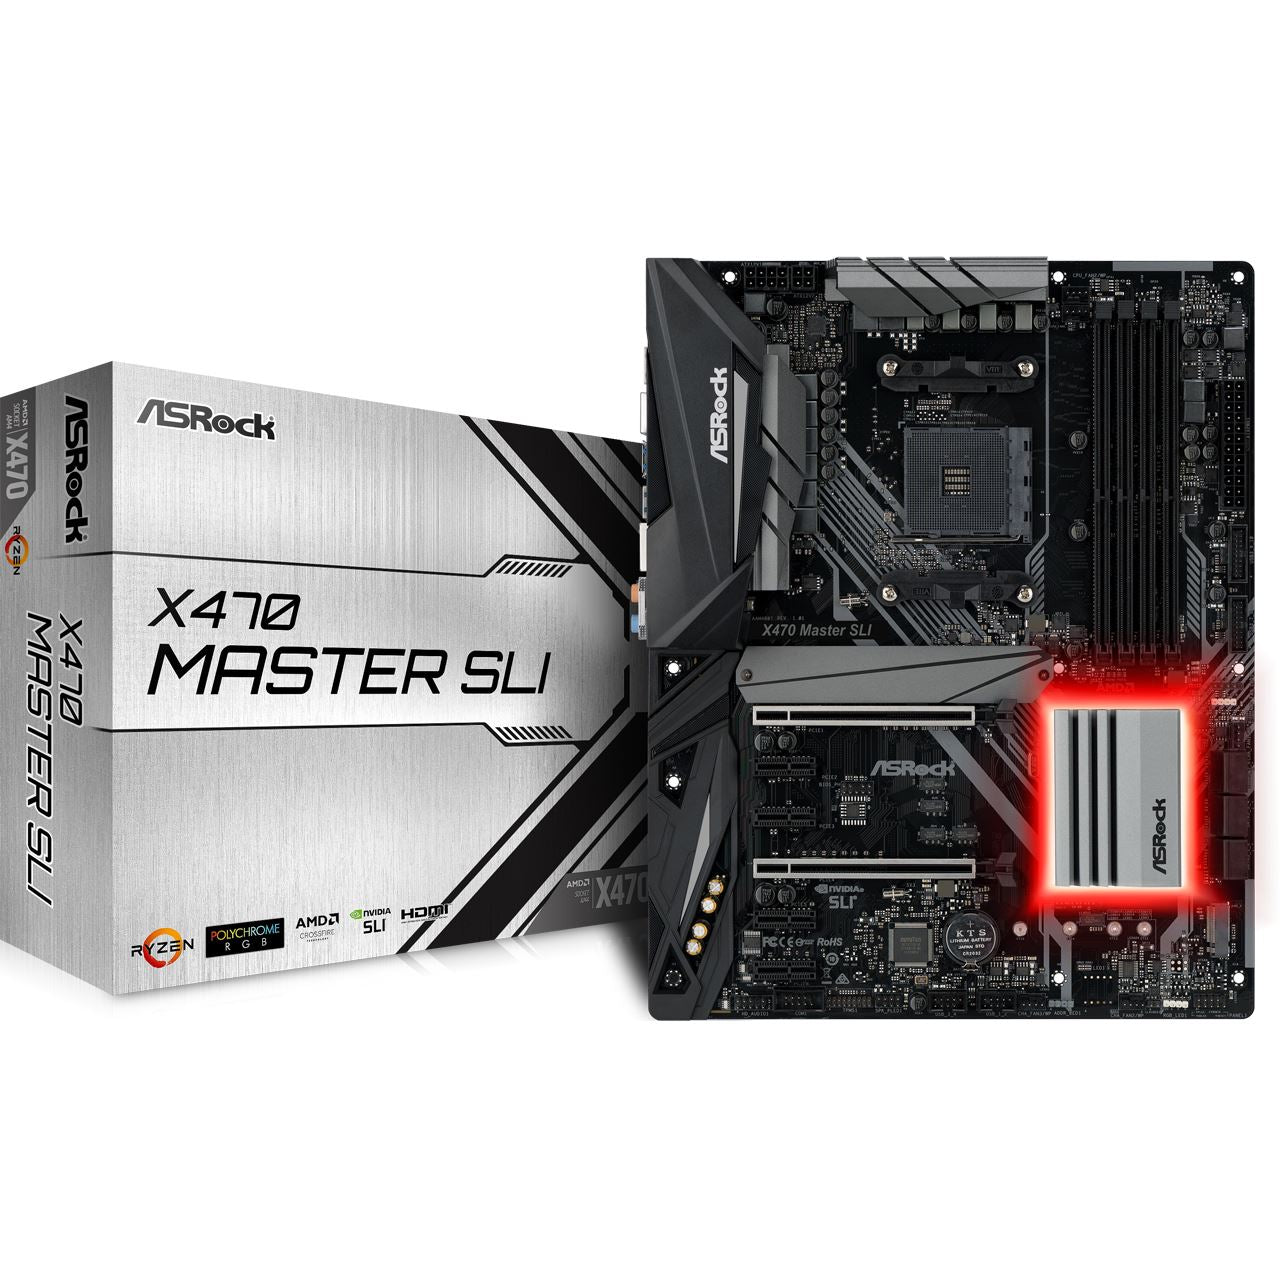 ASRock X470 Master SLI AMD X470 So.AM4 Dual Channel DDR4 ATX Retail